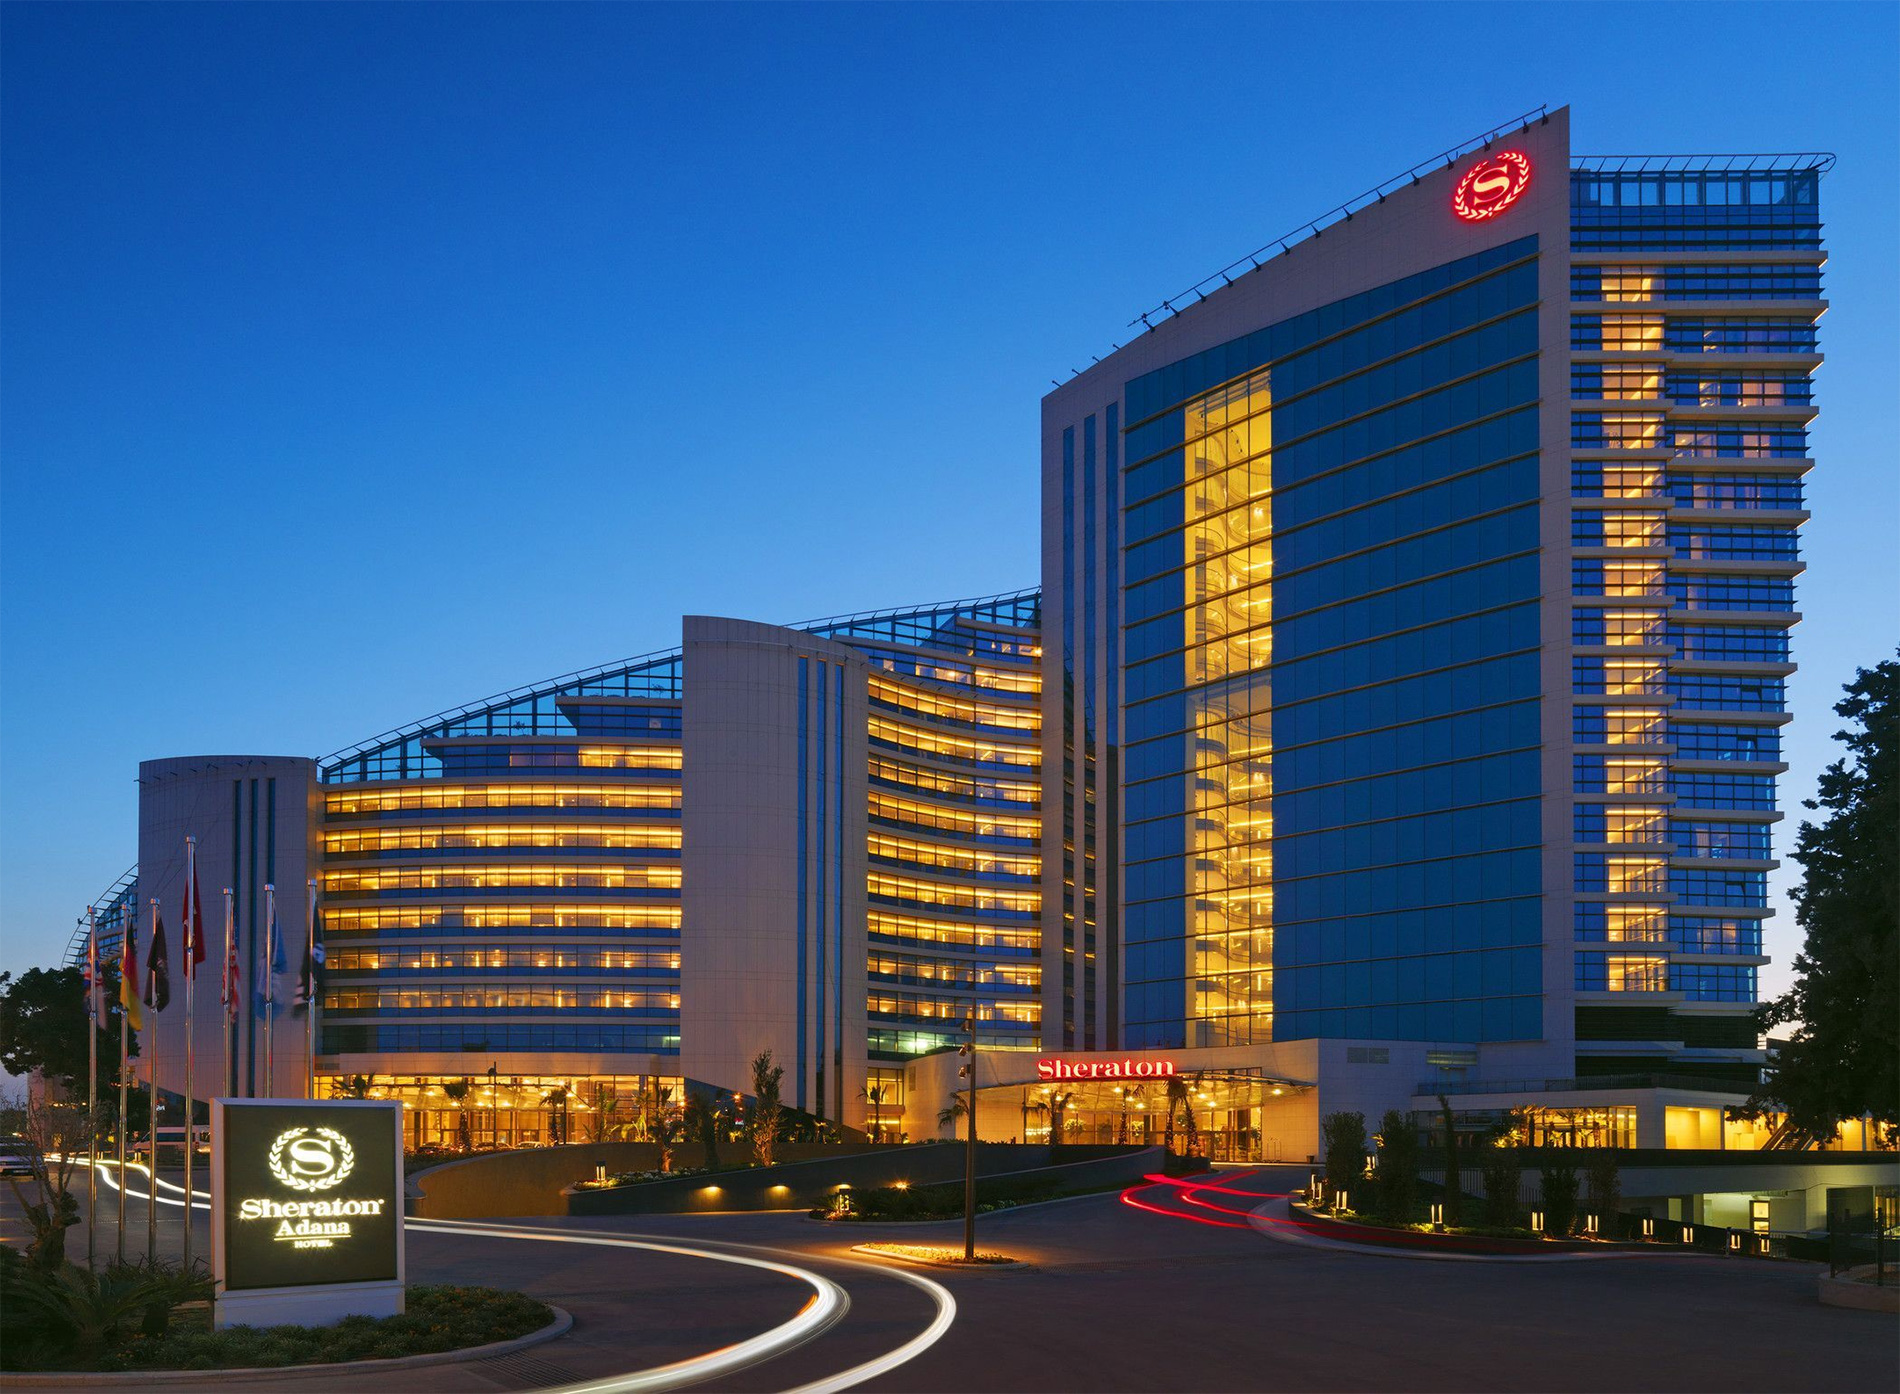 Starwood Hotels Resorts Reaches Ten In Turkey With The New Sheraton Adana Hotel